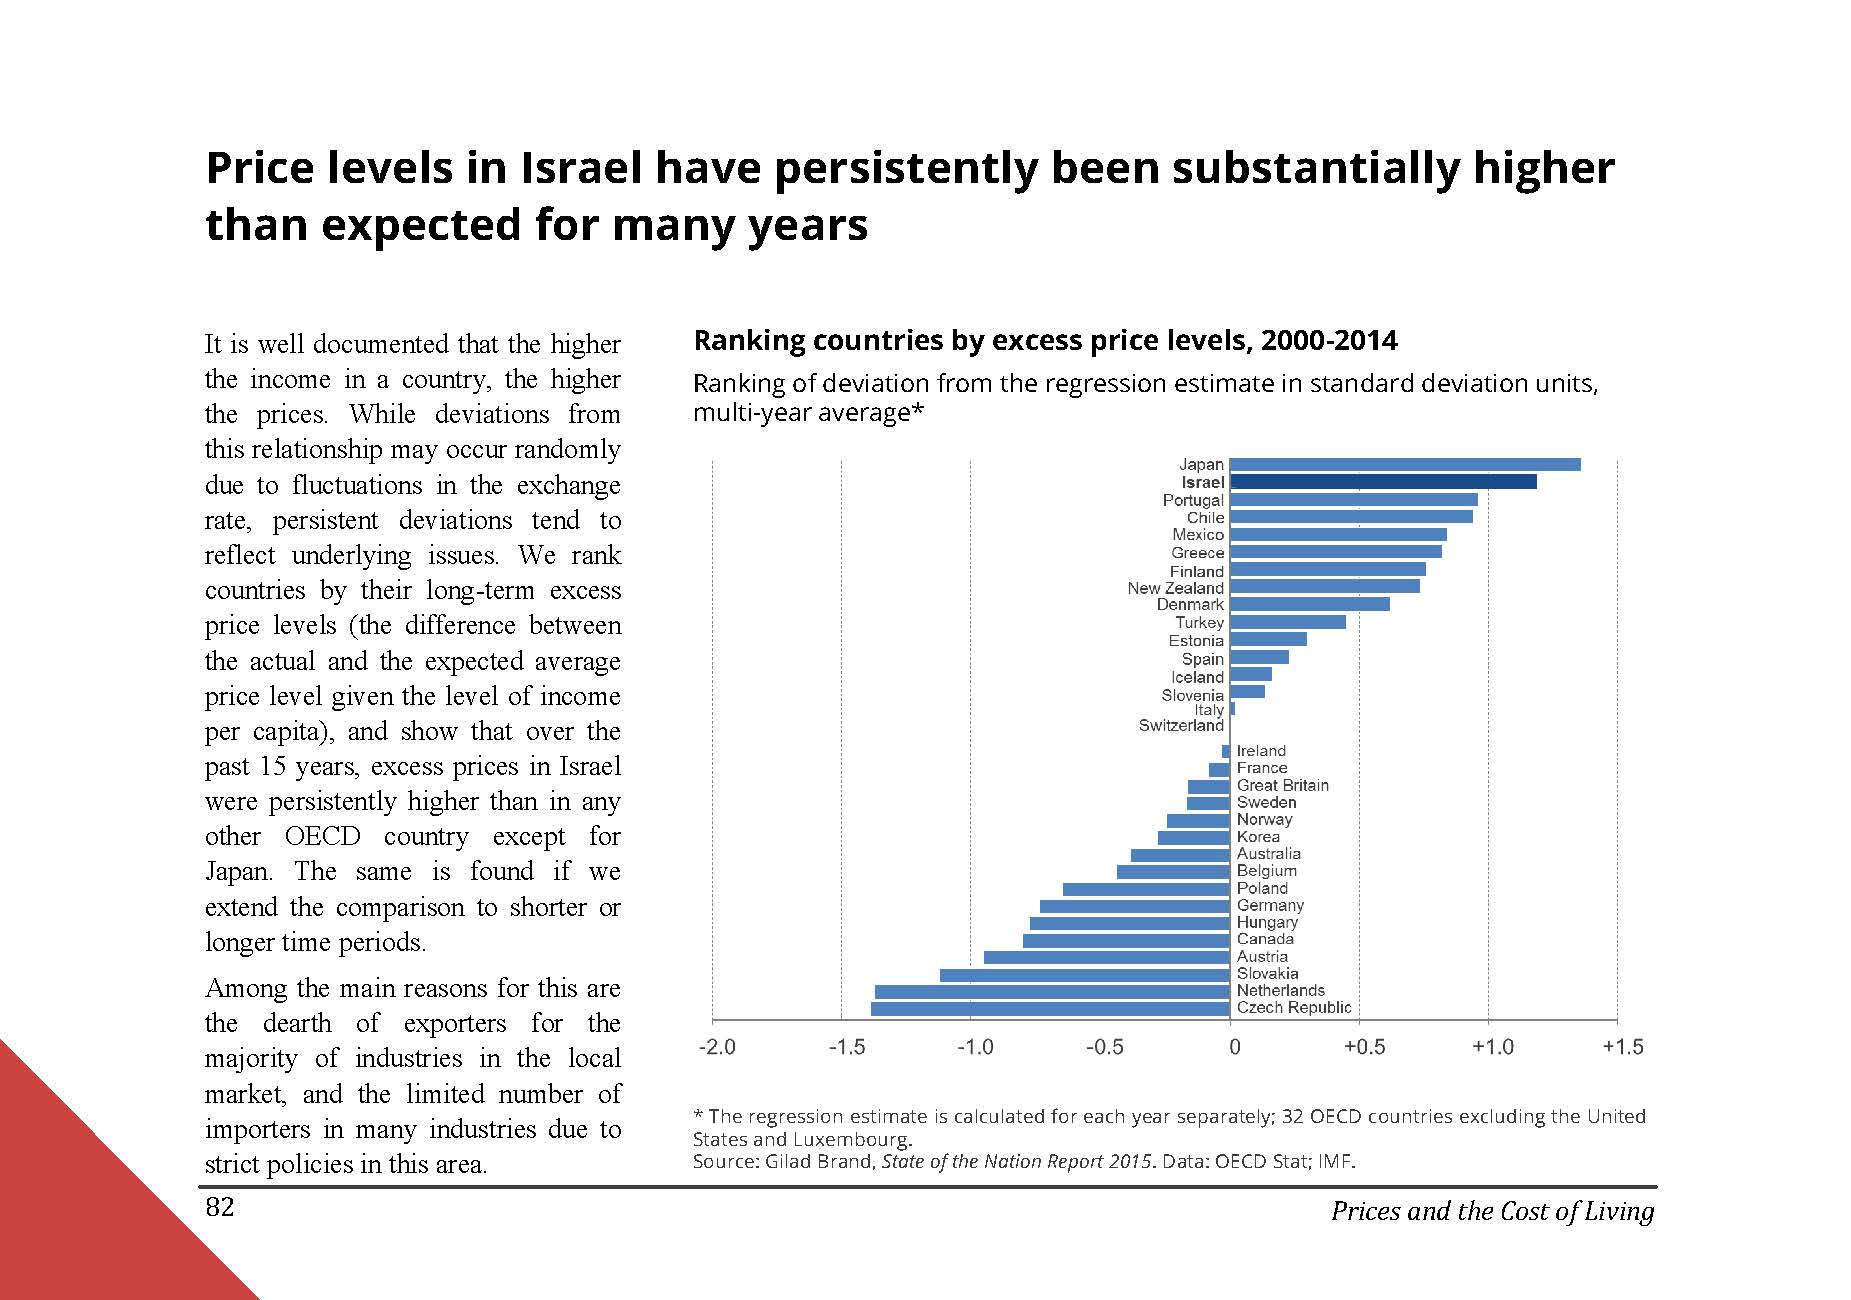 Price levels in Israel have persistently been substantially higher than expected for many years